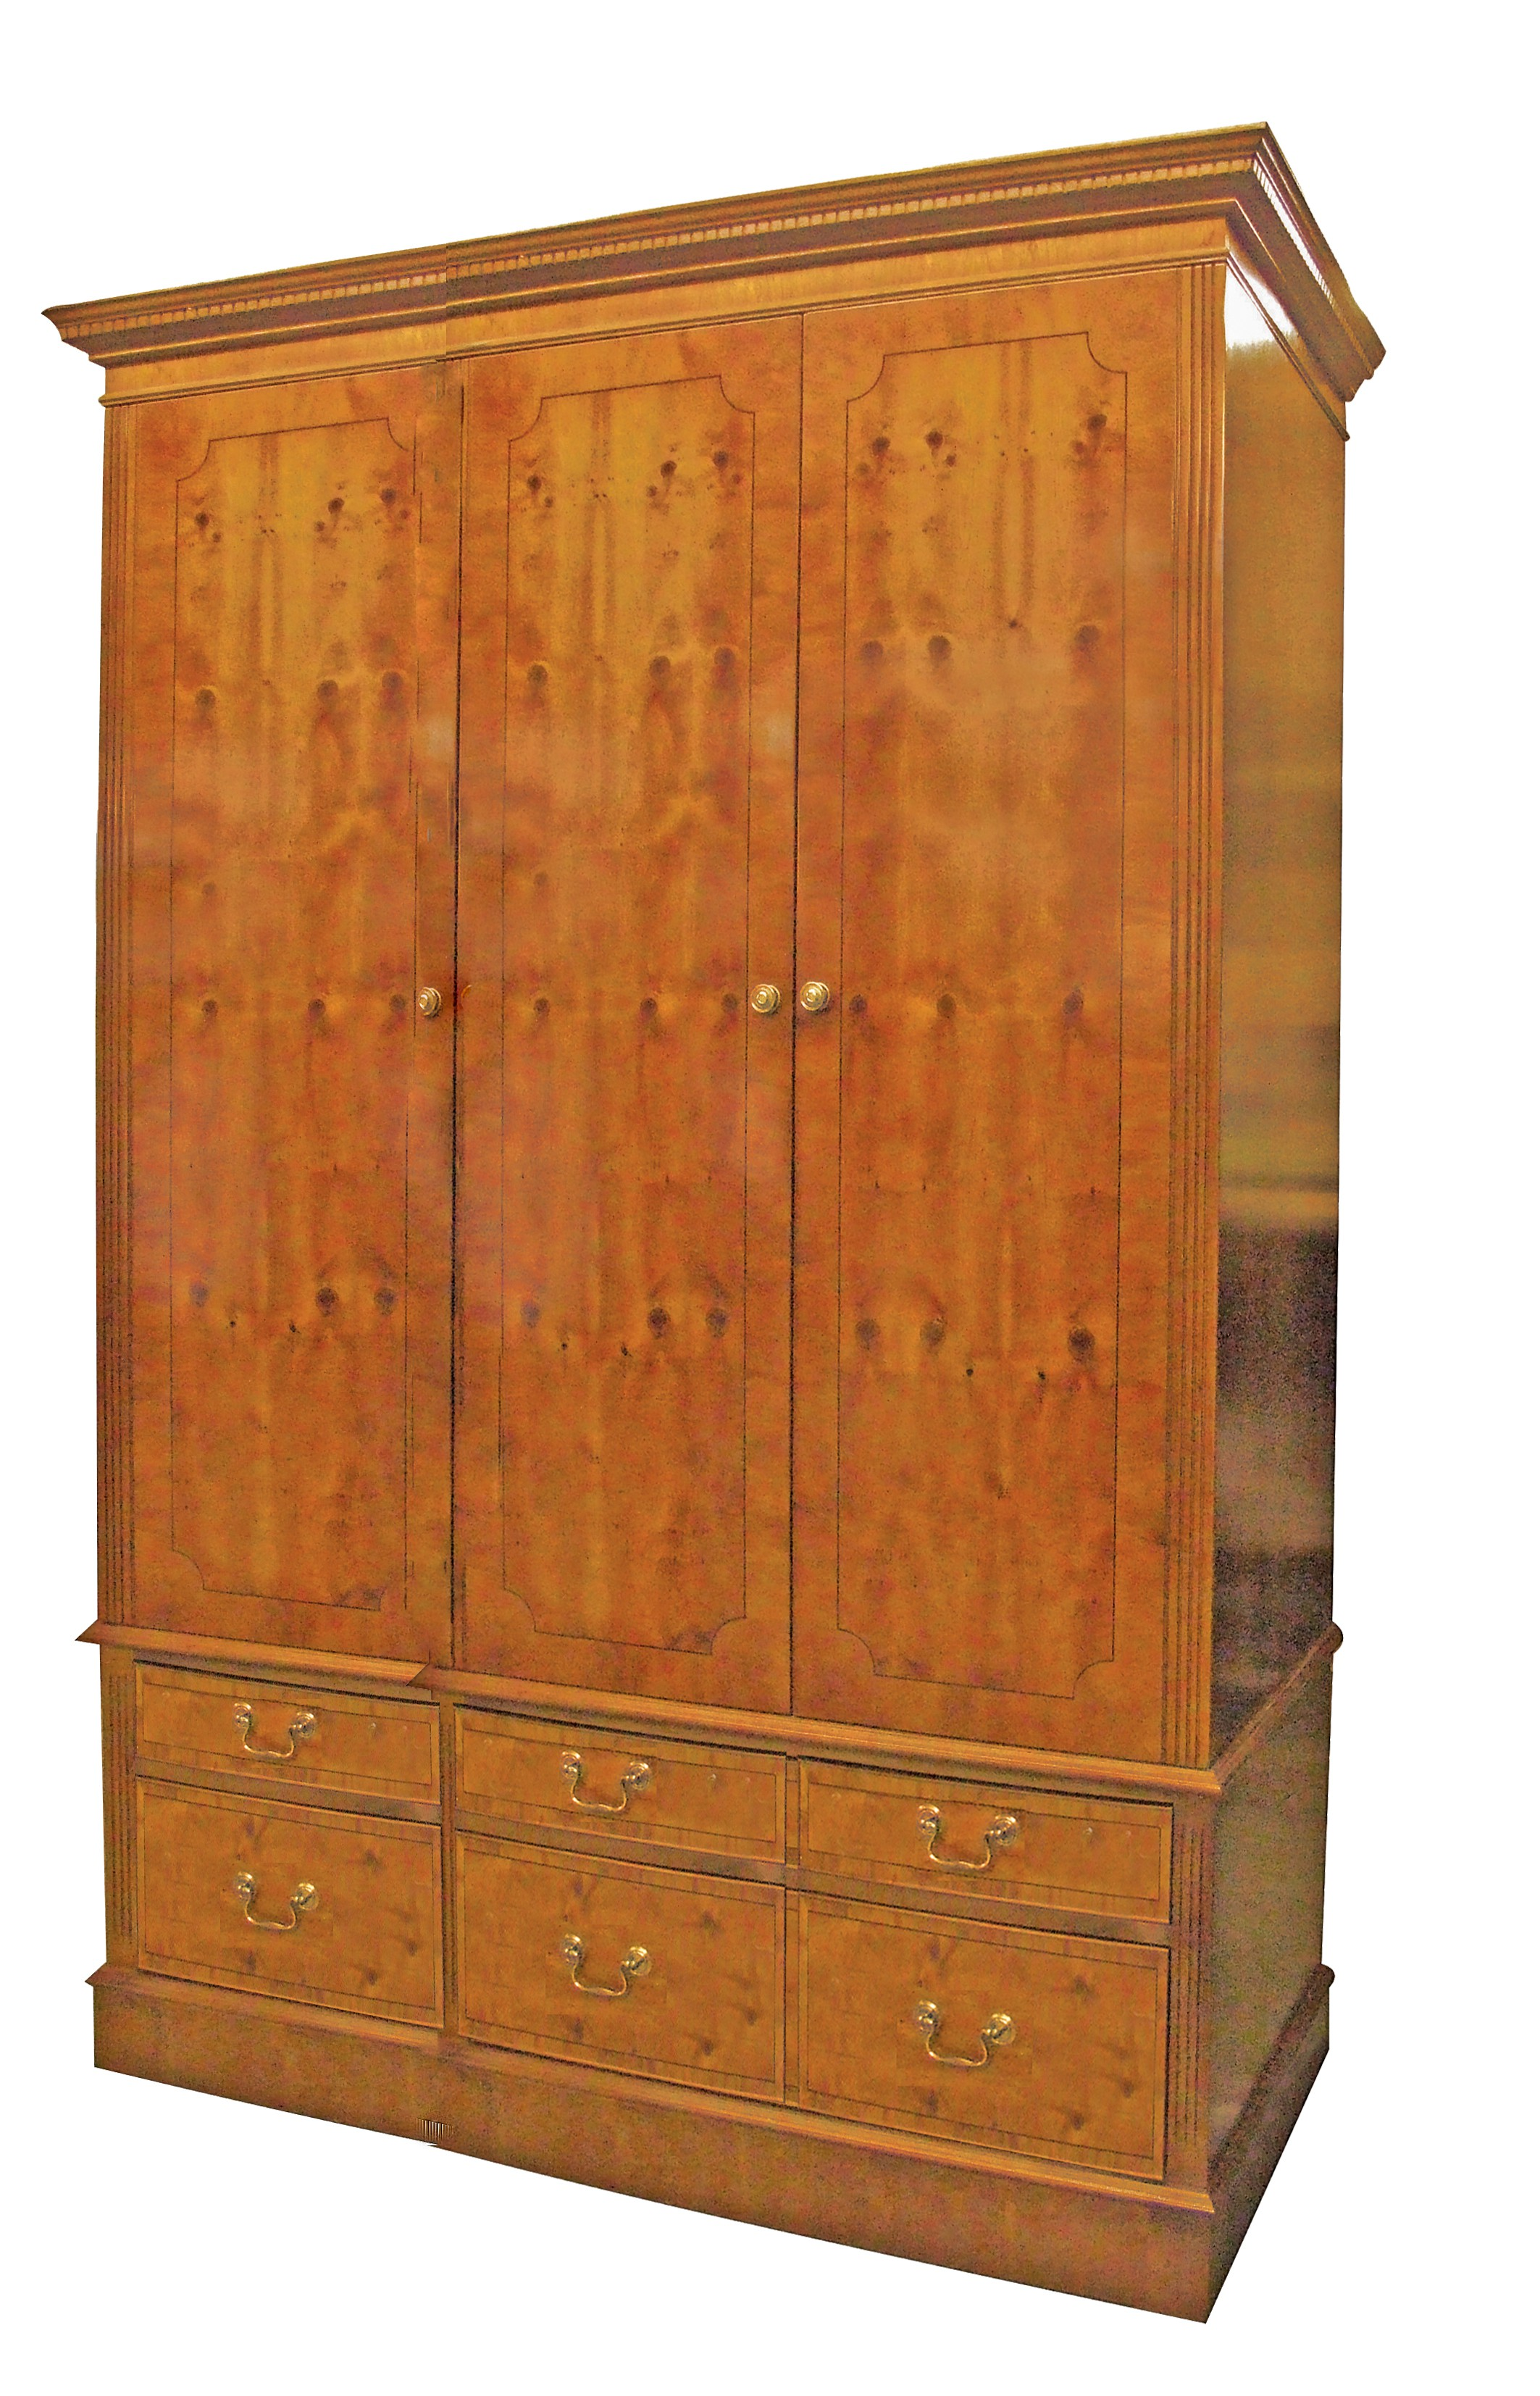 Door wardrobe large wooden drawers